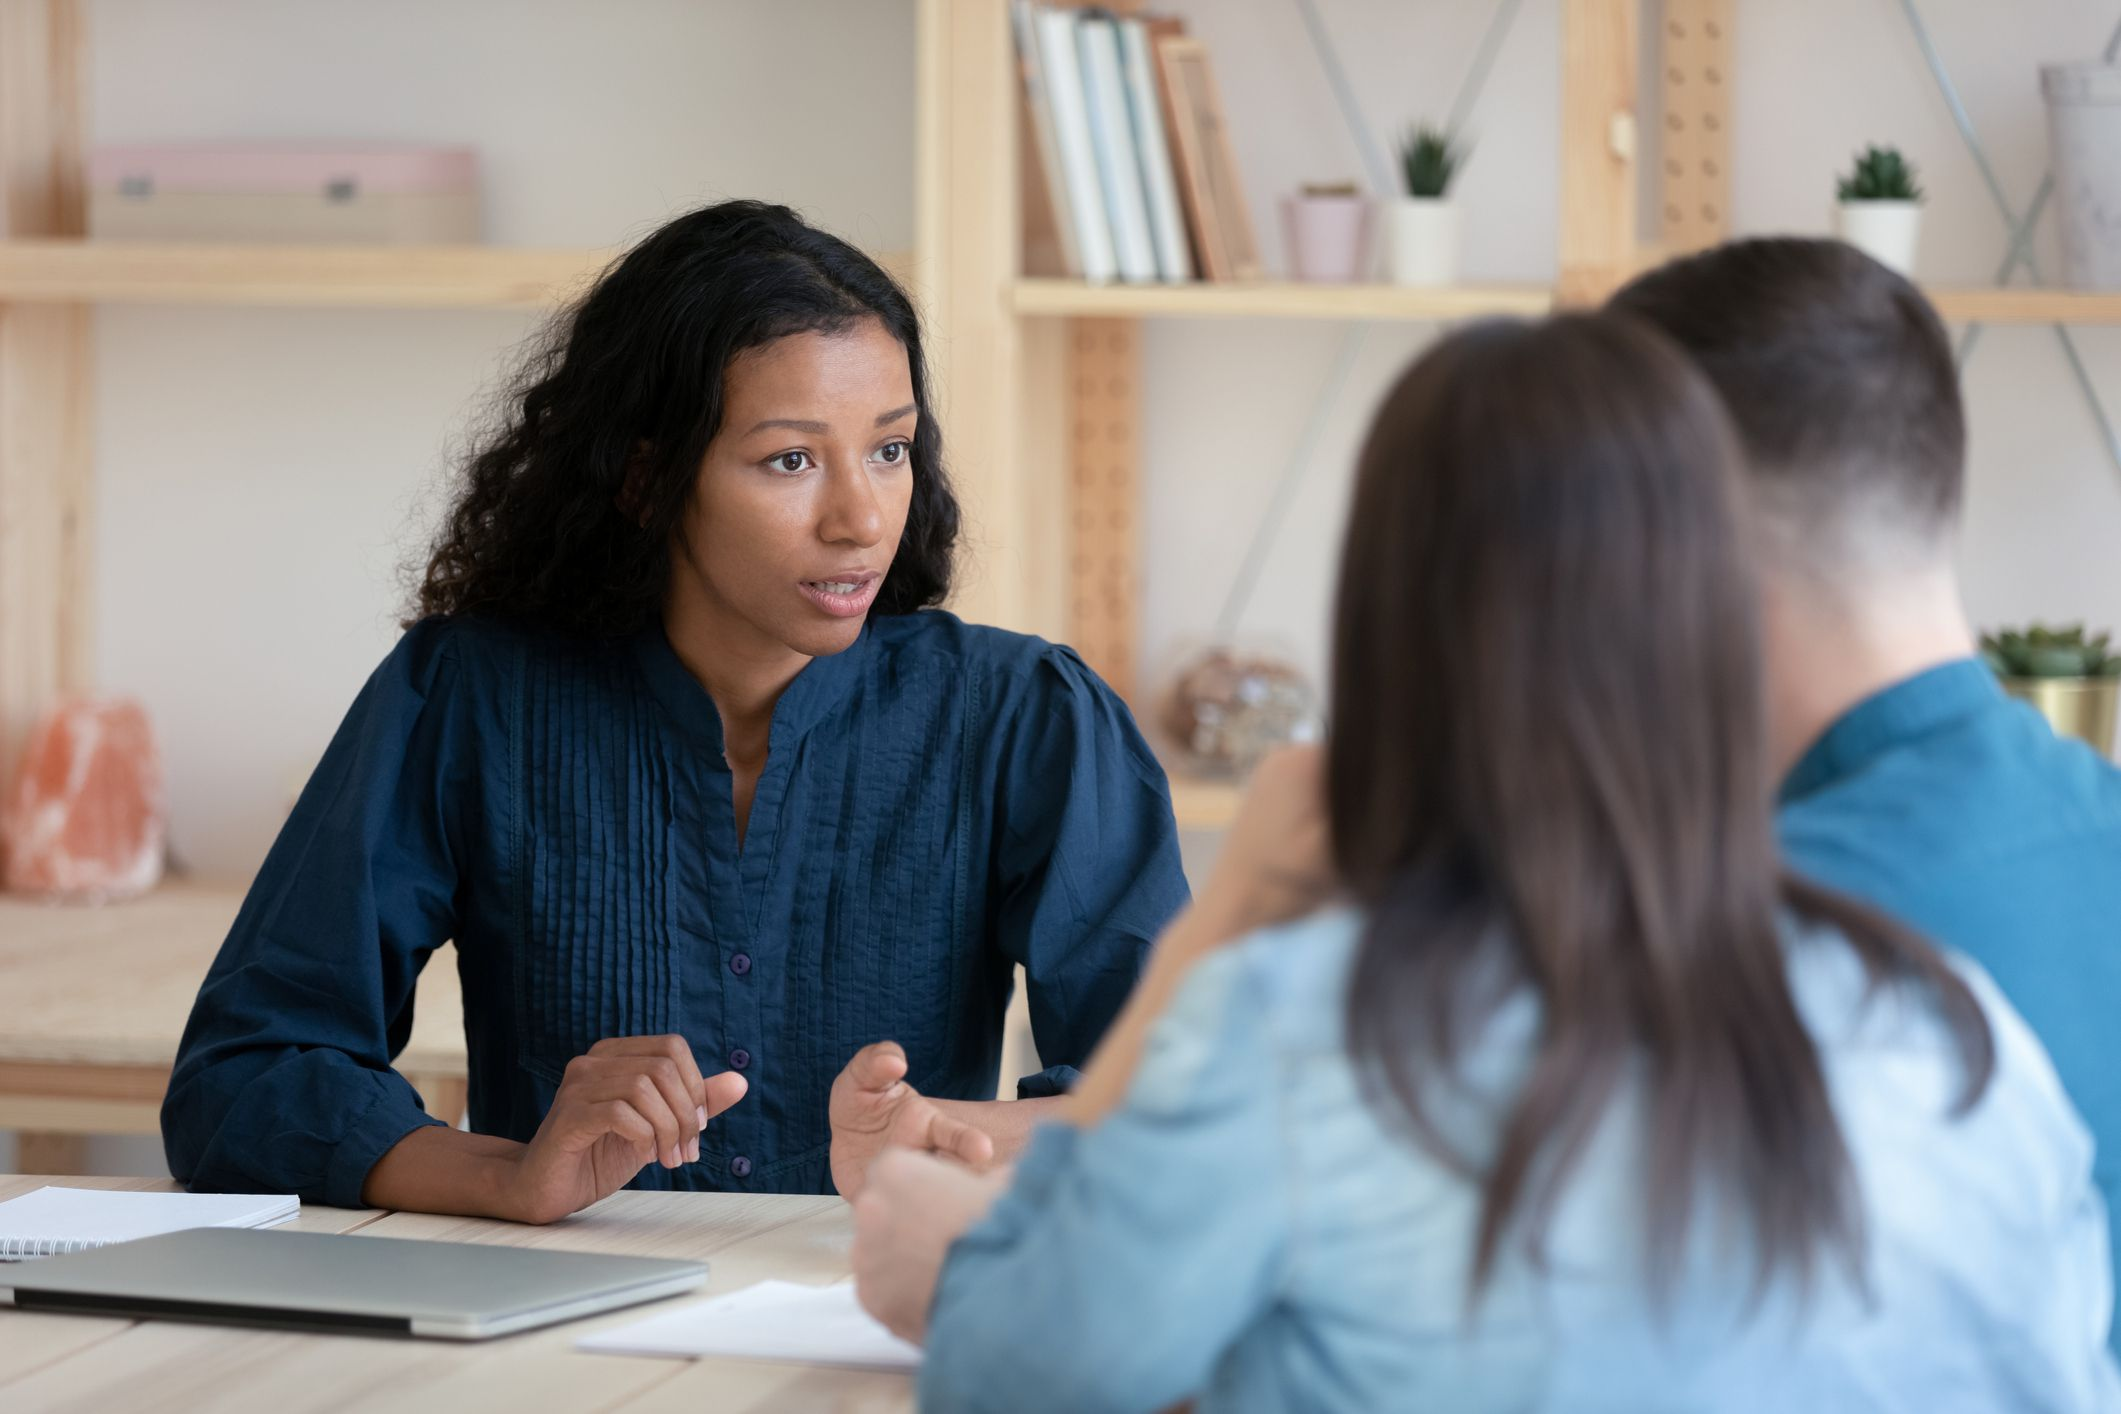 Inside Credit Repair: What You Need to Know to Fix Your Credit